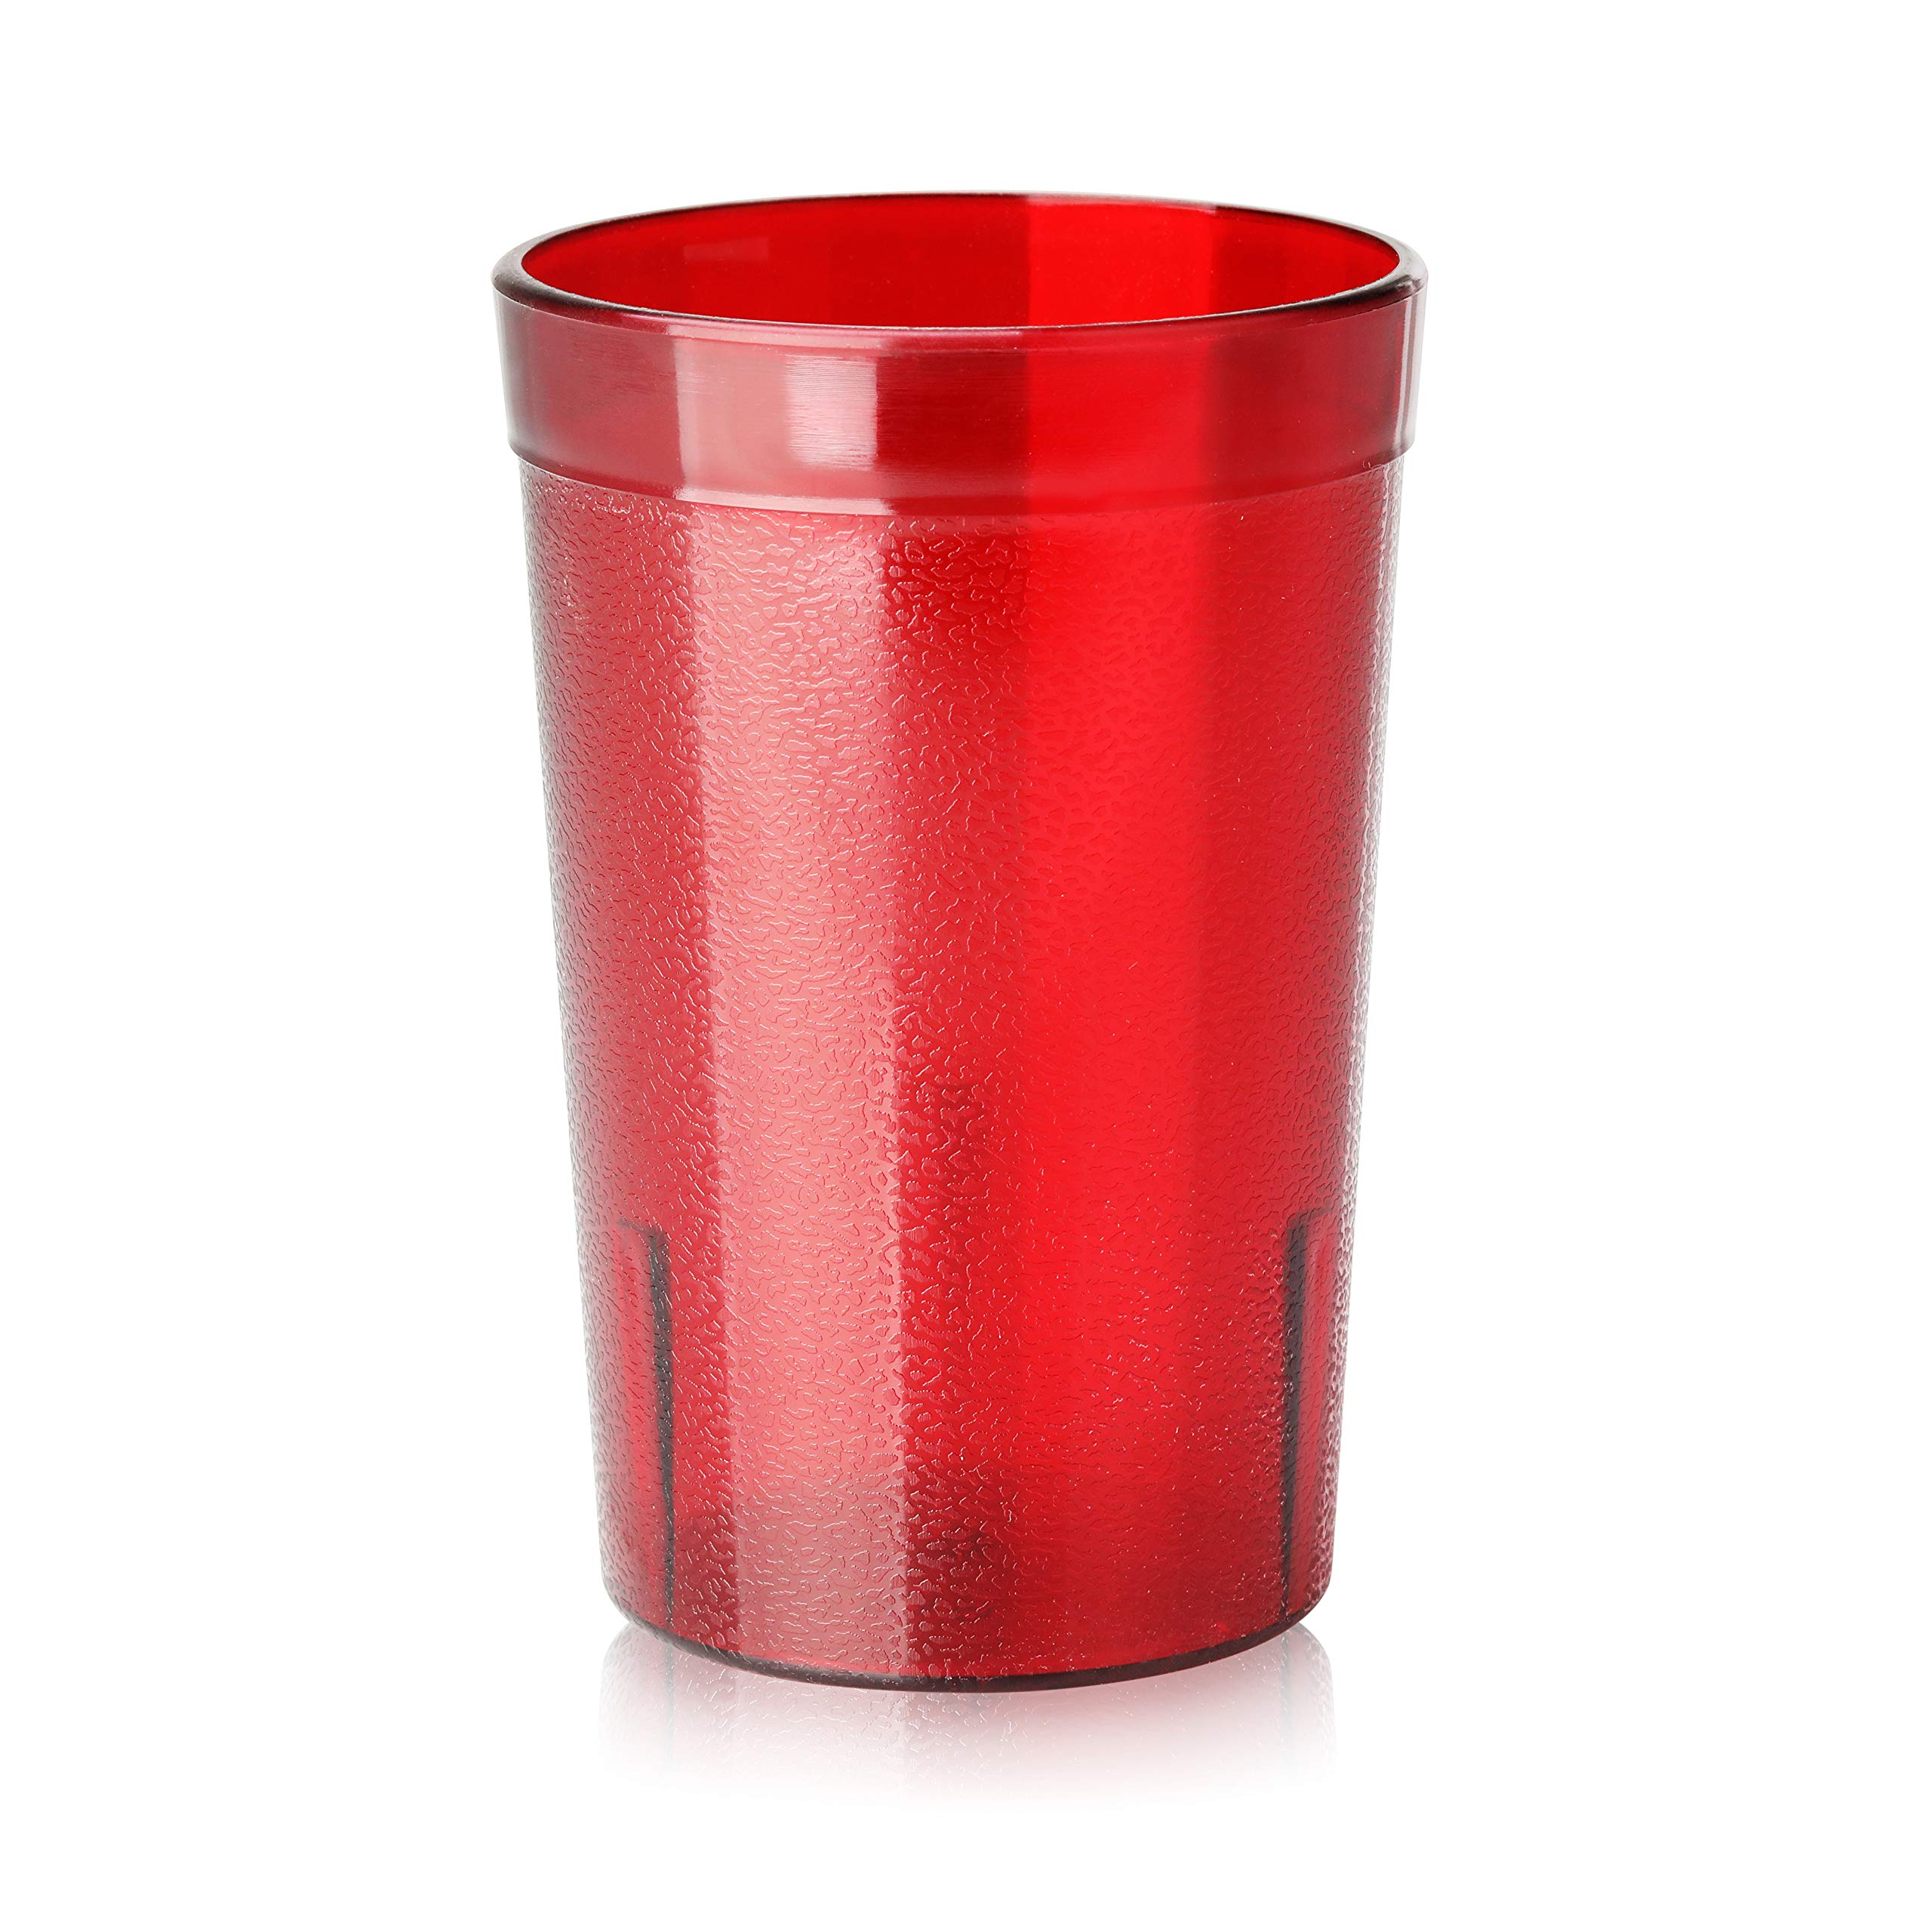 New Star Foodservice 46670 Tumbler Beverage Cup Stackable Cups Break Resistant Commercial Plastic 8 Oz Red Set Of 72 Buy Online In Aruba At Aruba Desertcart Com Productid 18896666